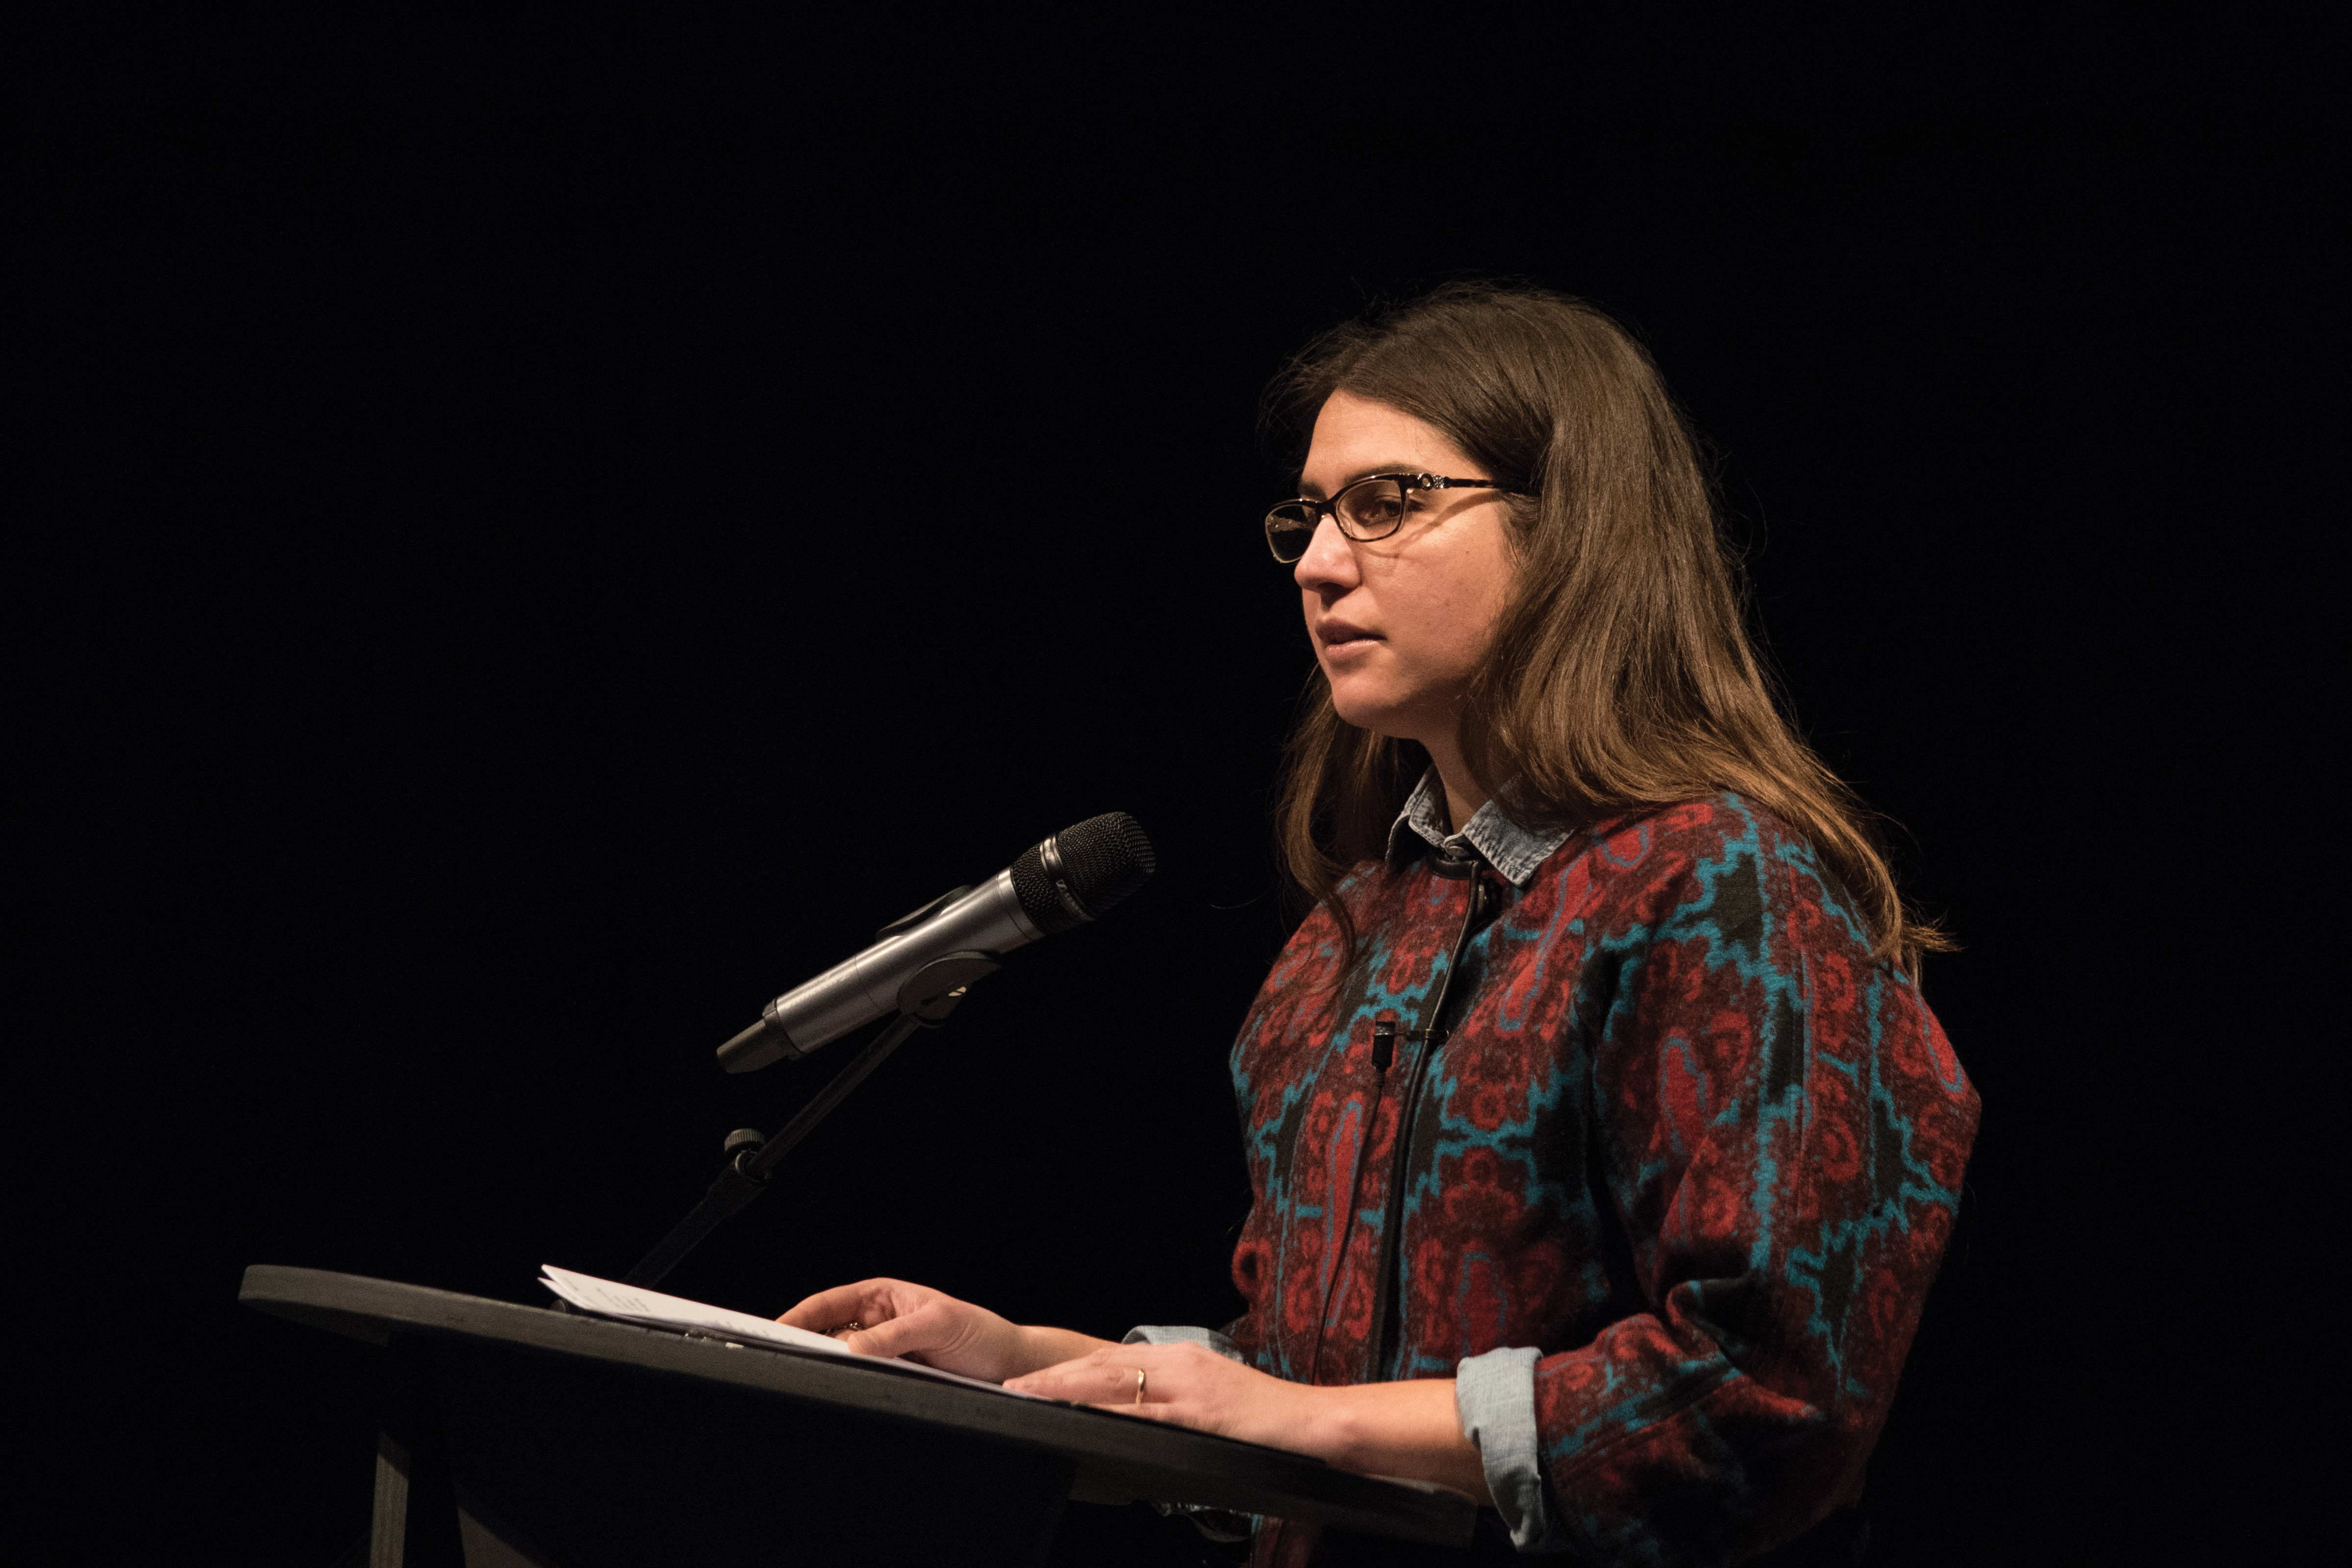 """Writer Azareen Van Der Vliet Oloomi, a professor at the University of Notre Dame, read from her novel """"Fra Keeler"""" at the final New Writing Series event of 2016 on Thursday, Dec. 1 at the Innovative Media Research and Commercialization Center. Photo by Maggie Gautrau."""